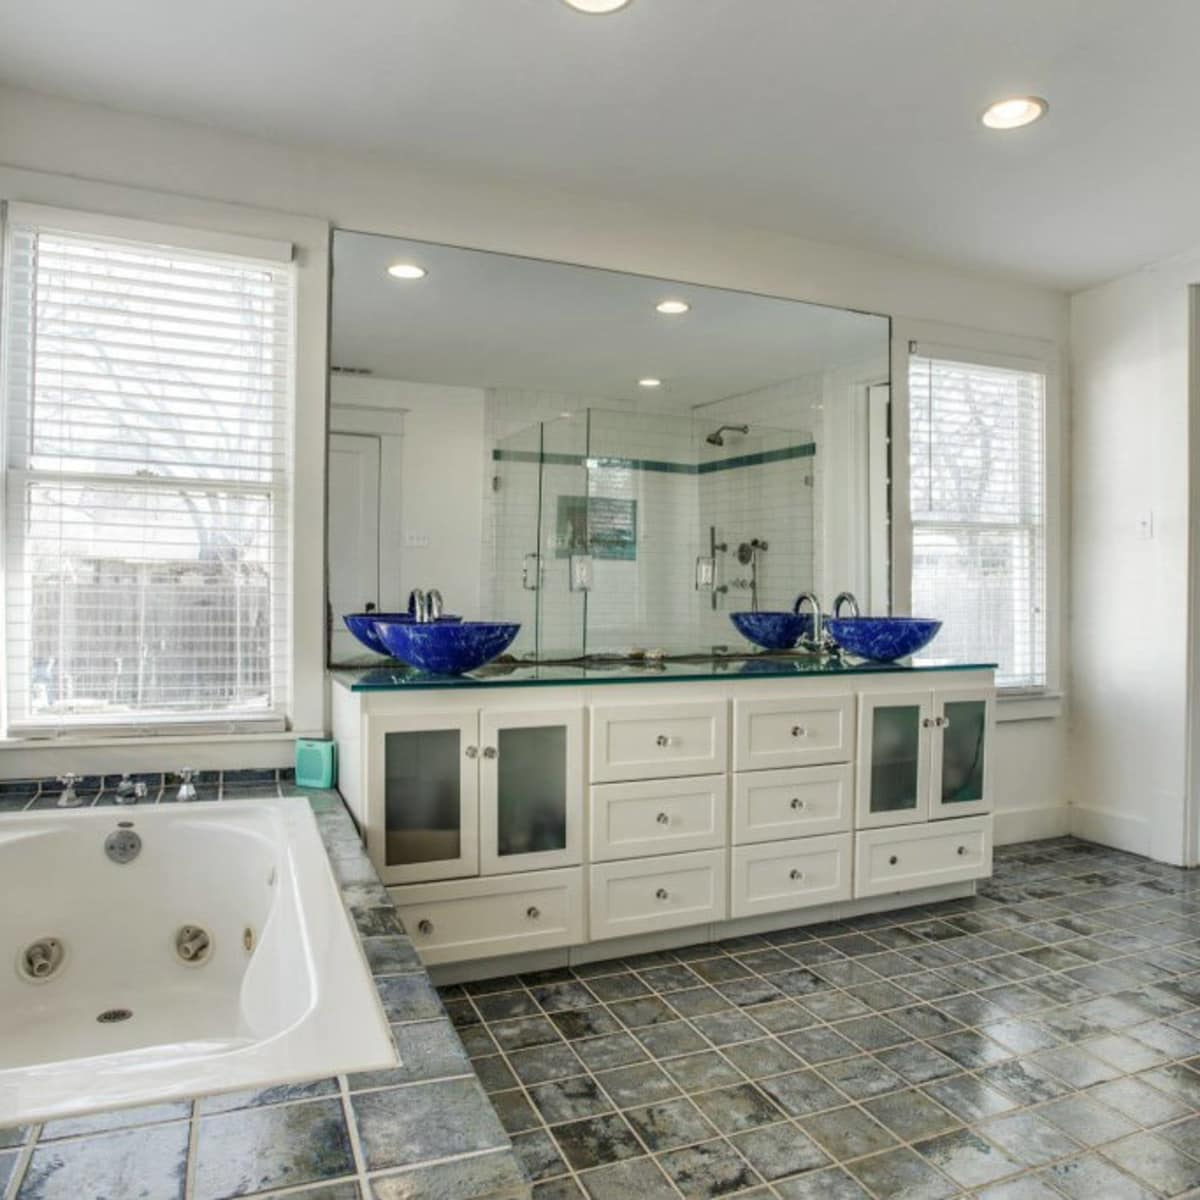 118 N. Winnetka master bathroom